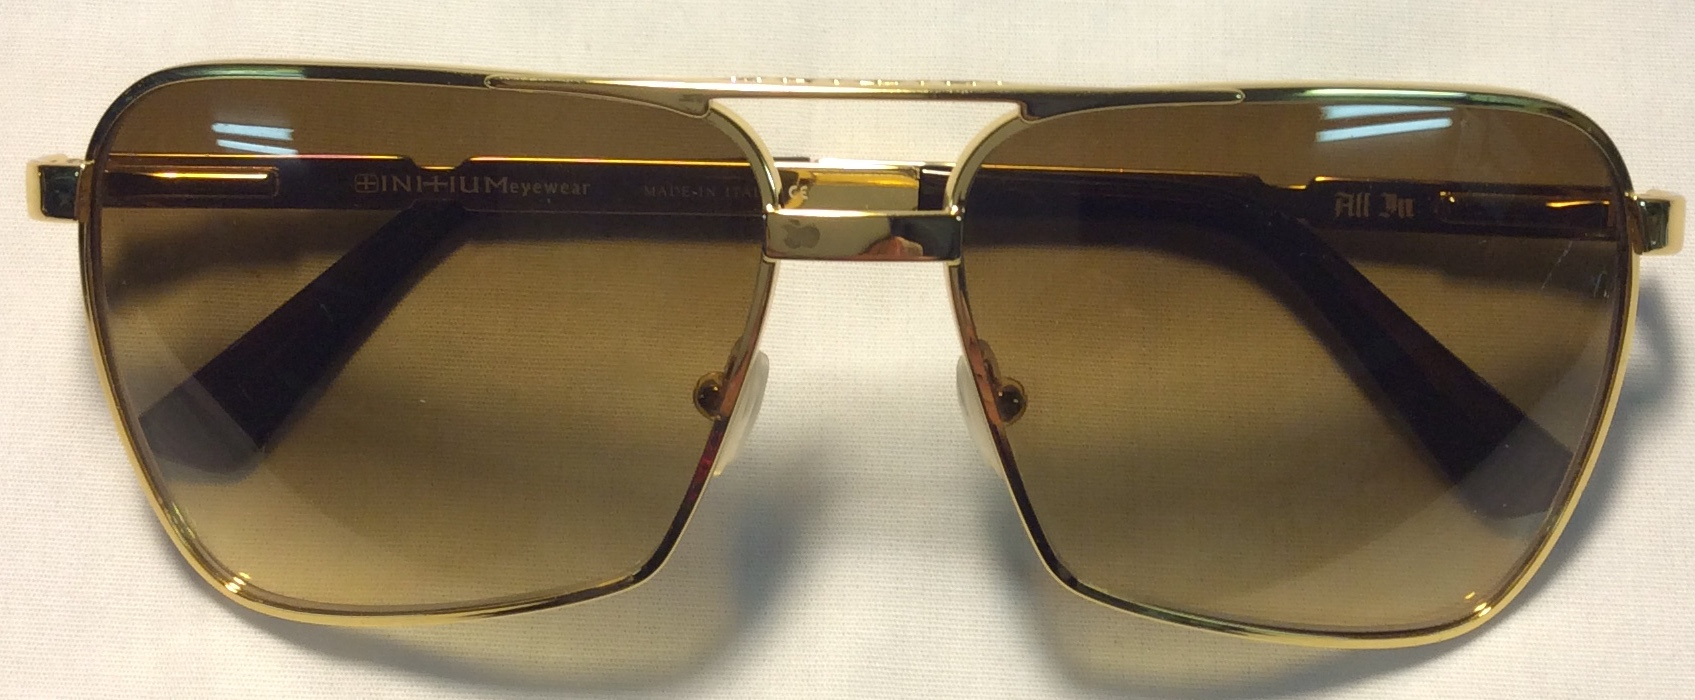 Initium Gold frames with brown ends